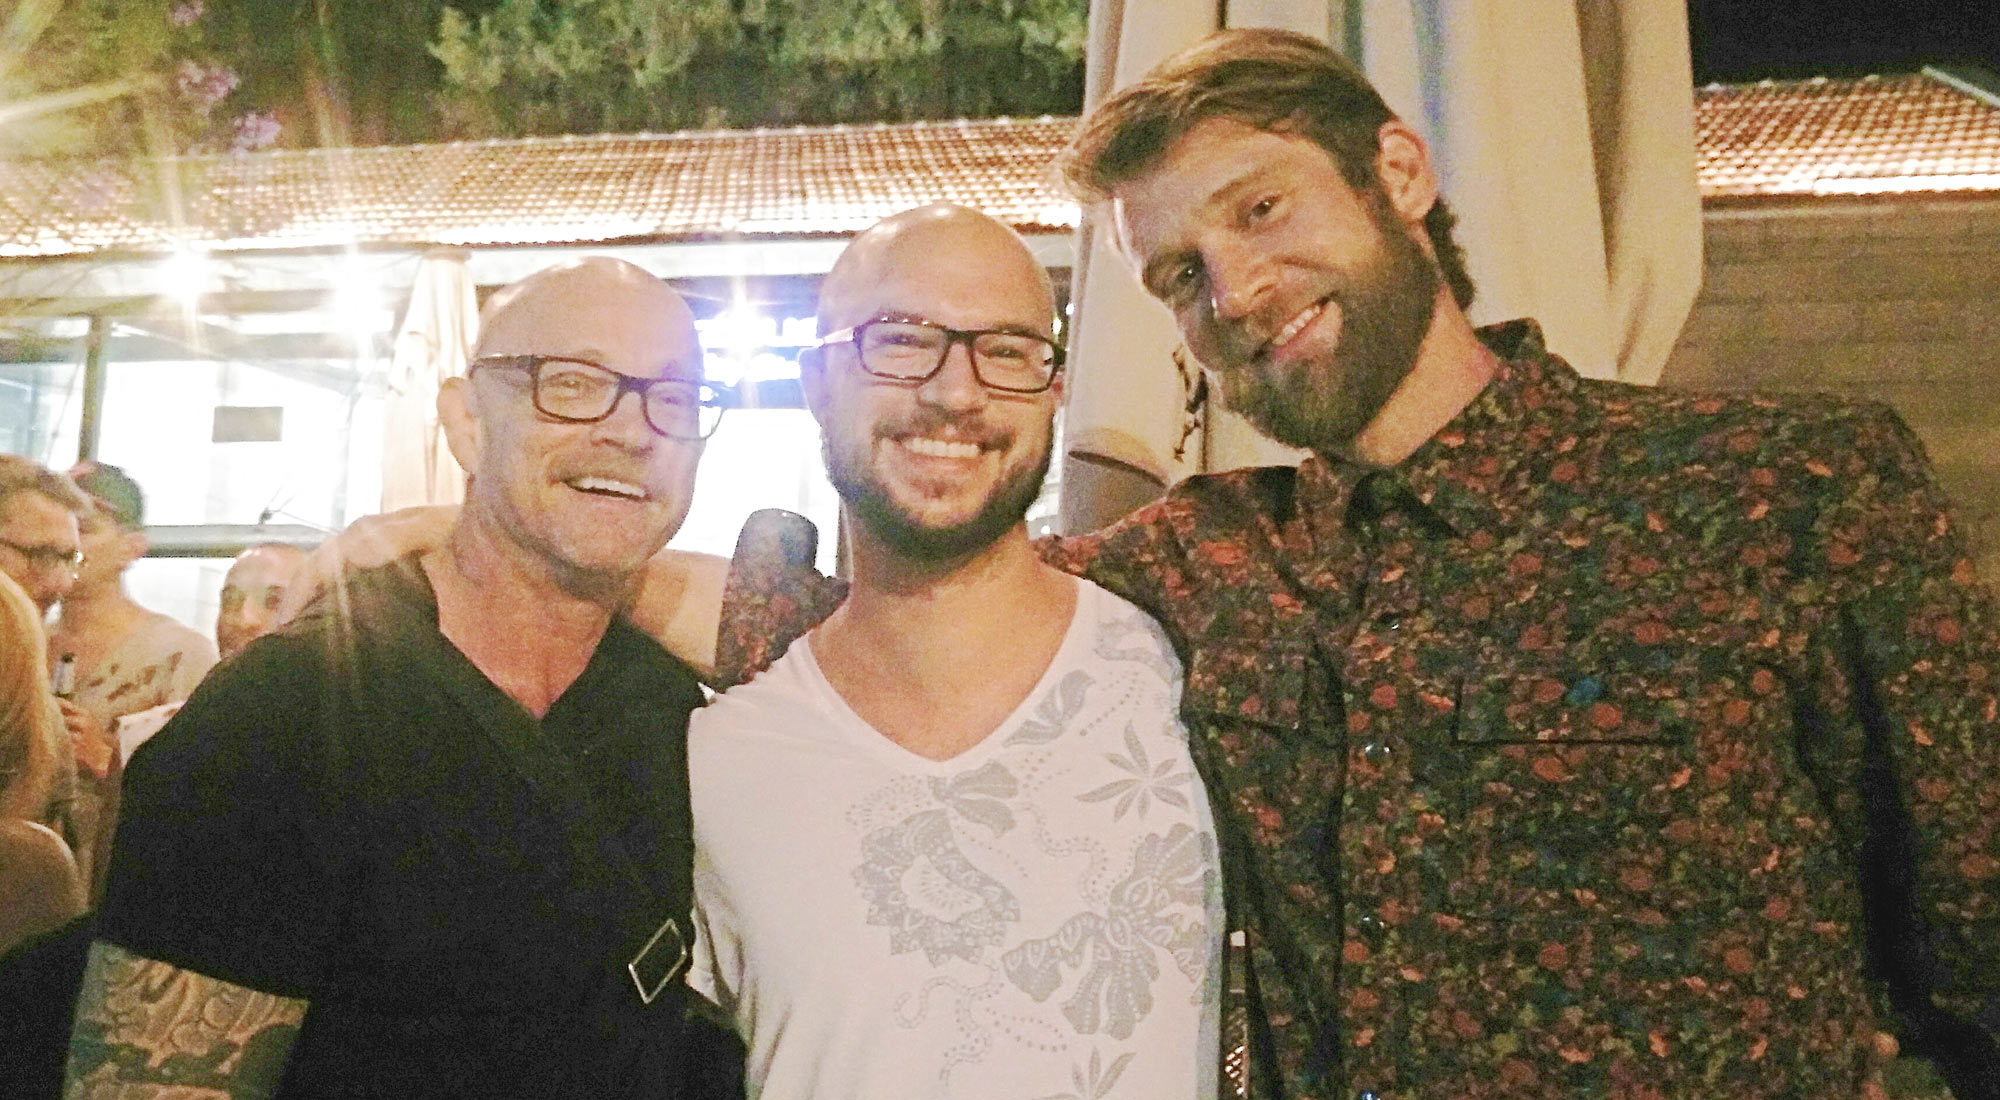 Photo of actor of adult entertainers and LGBT activists Buck Angel and Colby Keller with Martin Wolkner, director of Filmfest homochrom in Cologne und Dortmund